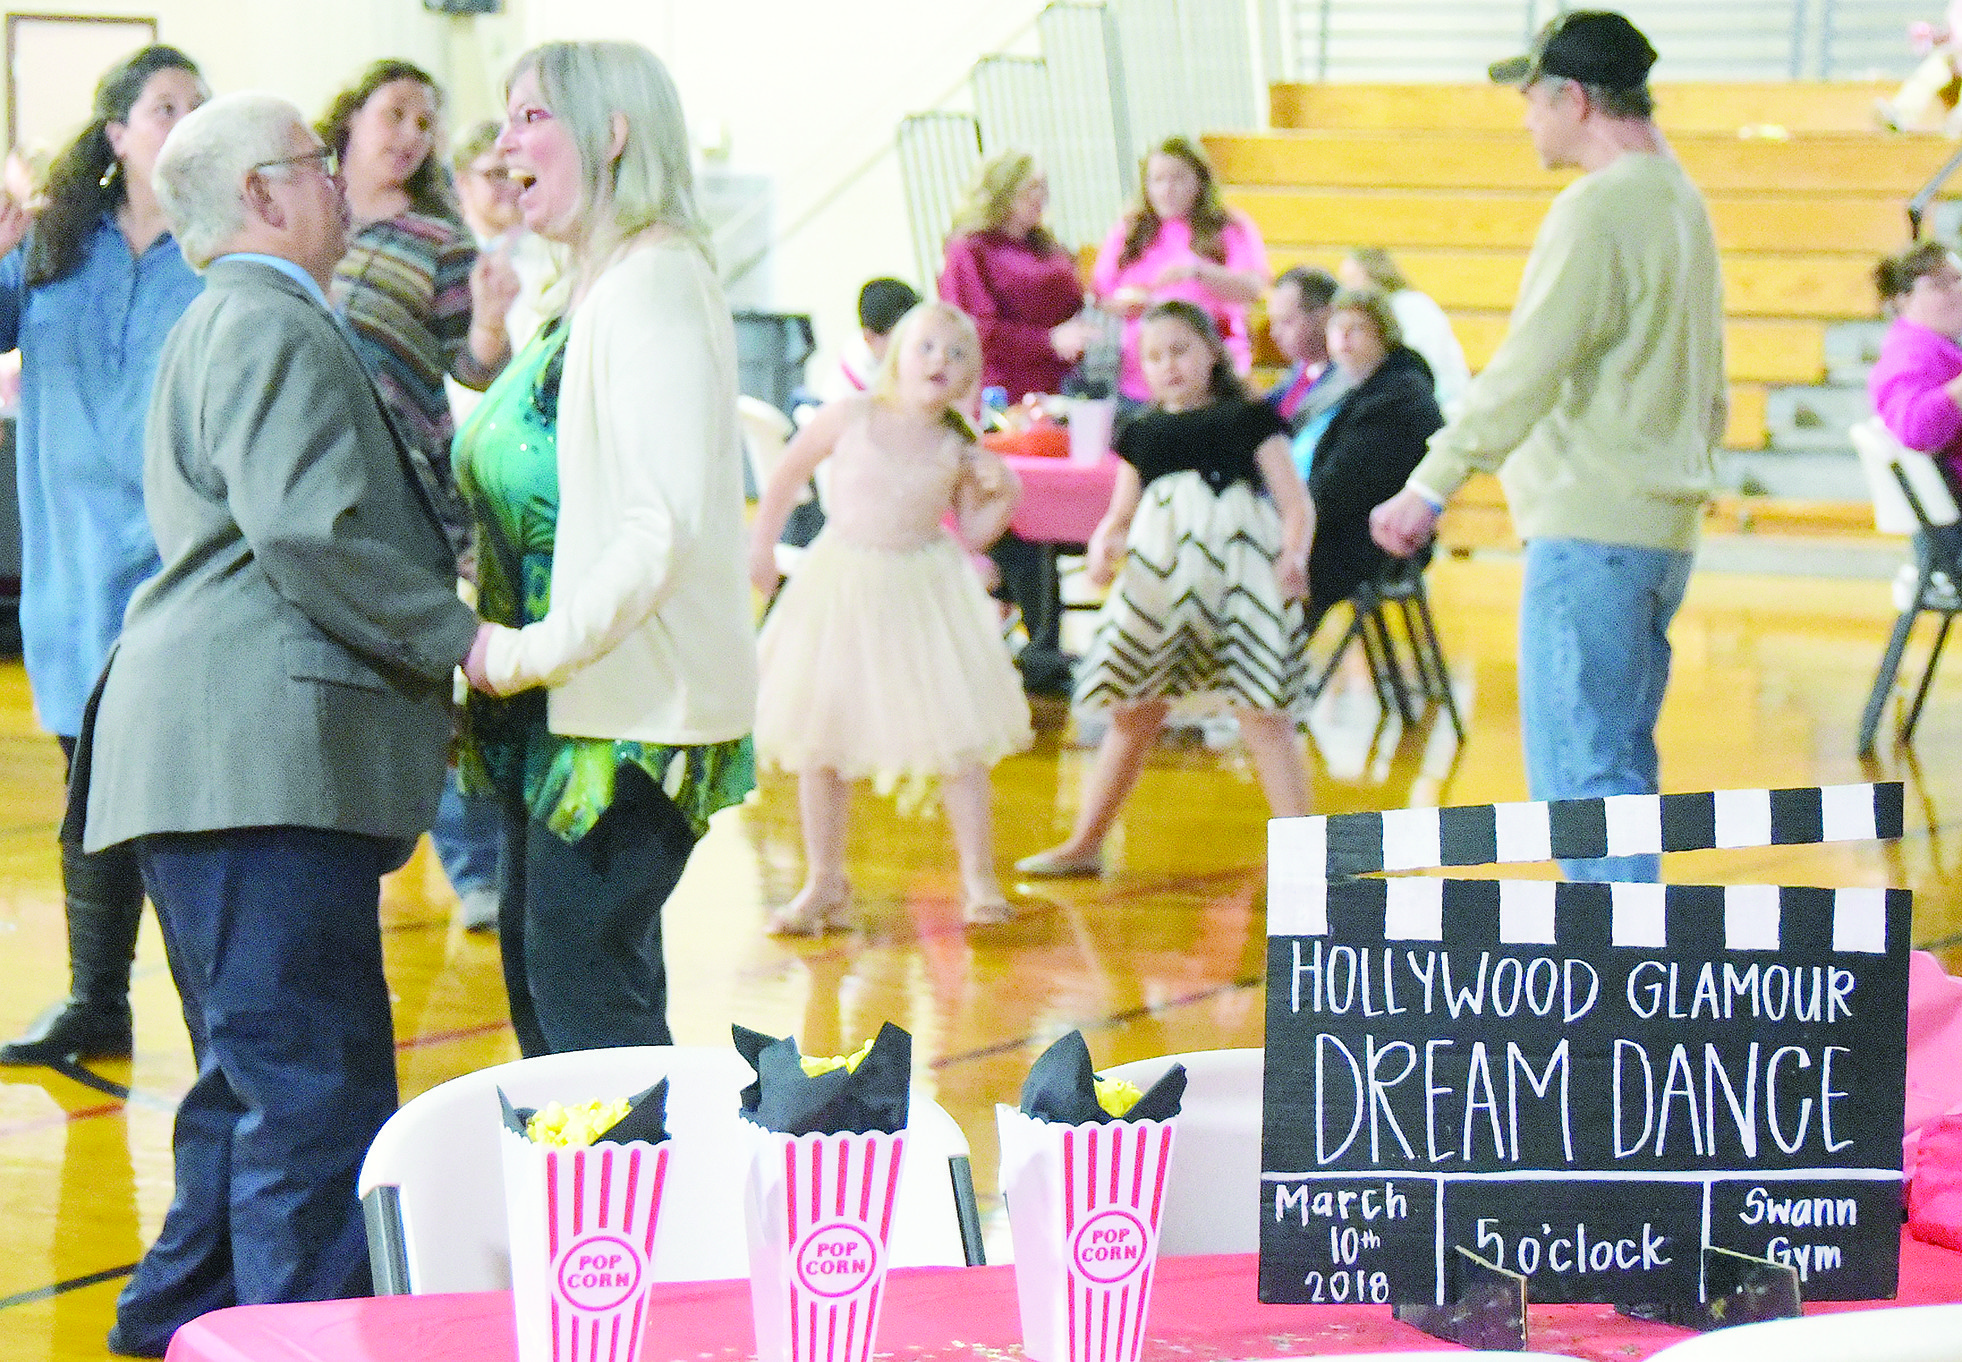 Special needs adults from across Walker County were treated to a 'Hollywood Glamour' Dream Dance Saturday night at Swann Gym in Jasper. The cance, now in its fifth year, is organized each year by Anna-Kate Gilbert.